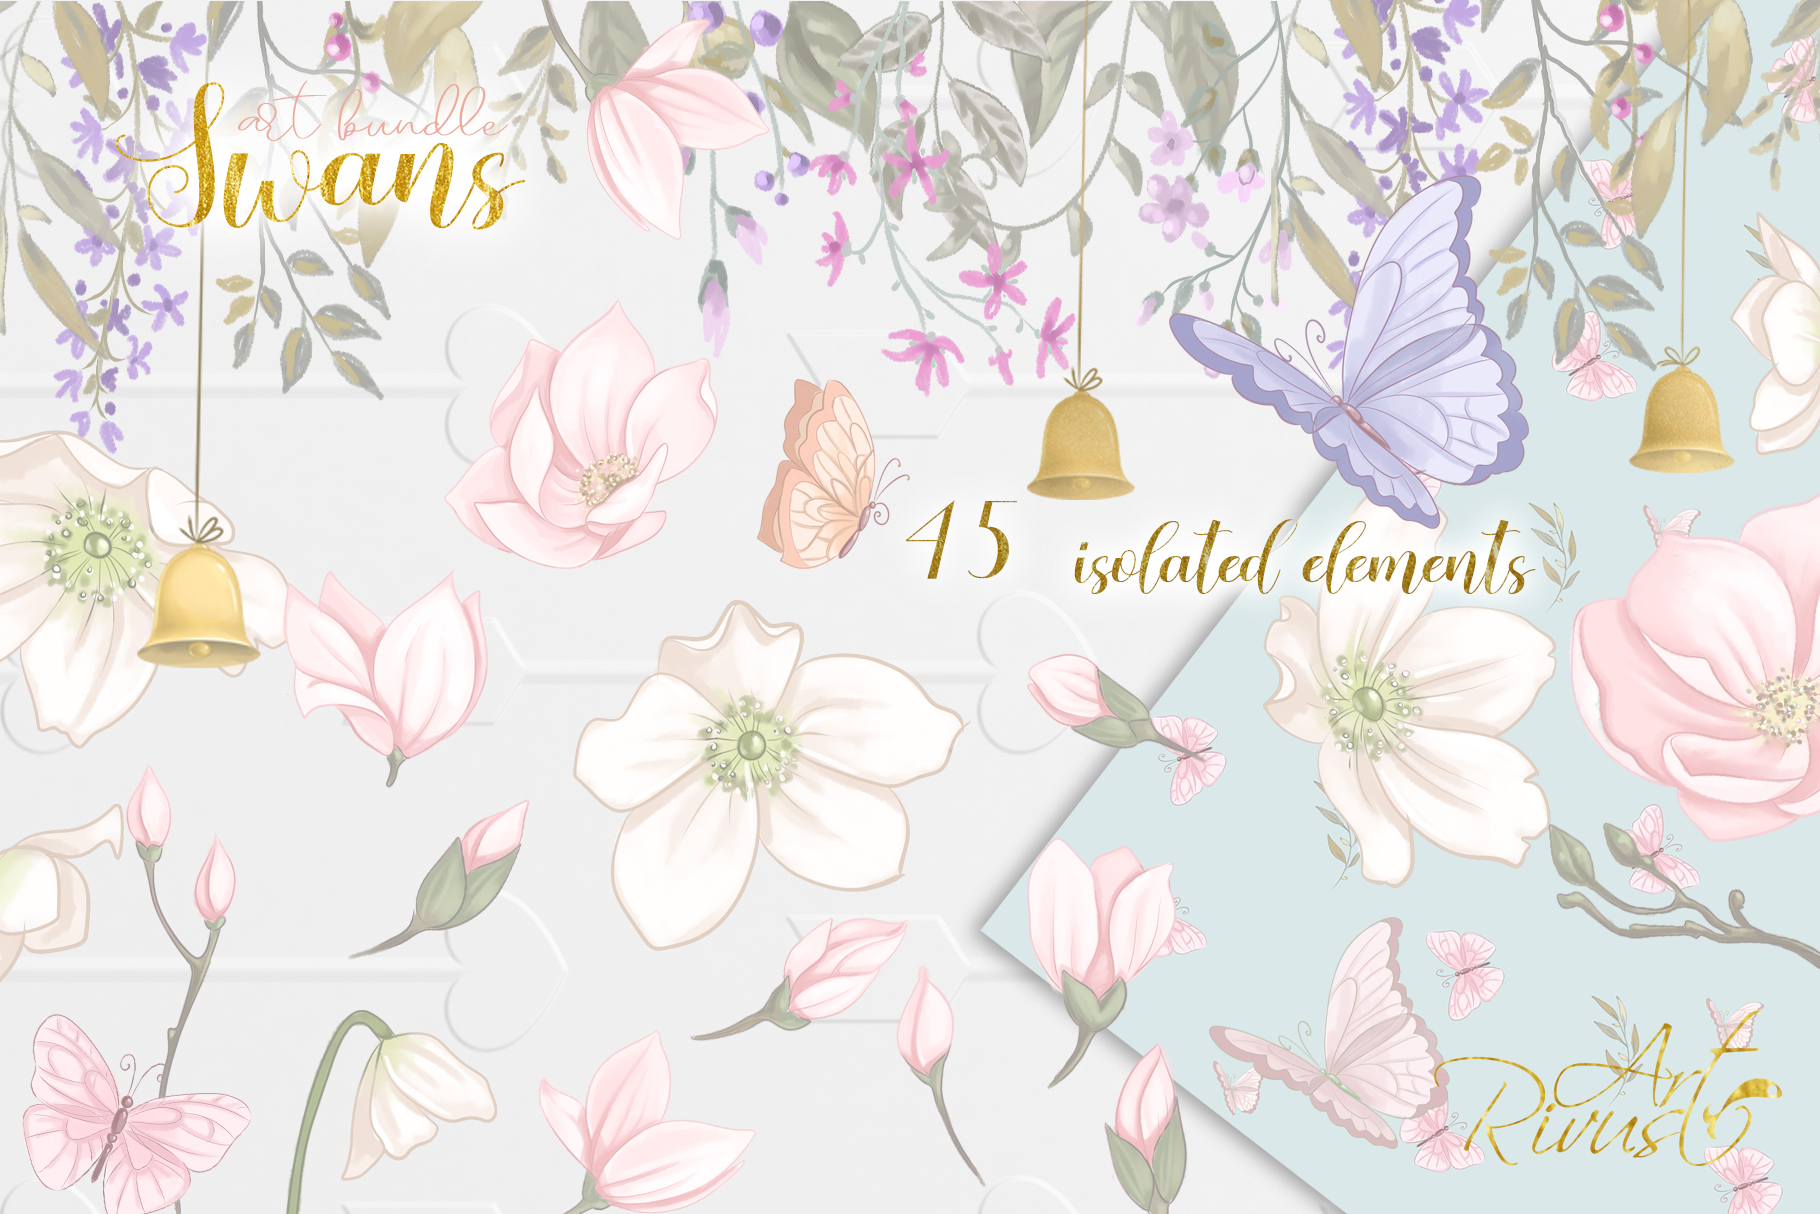 Swans clipart bundle. Wedding and baby shower graphic pack. example image 8